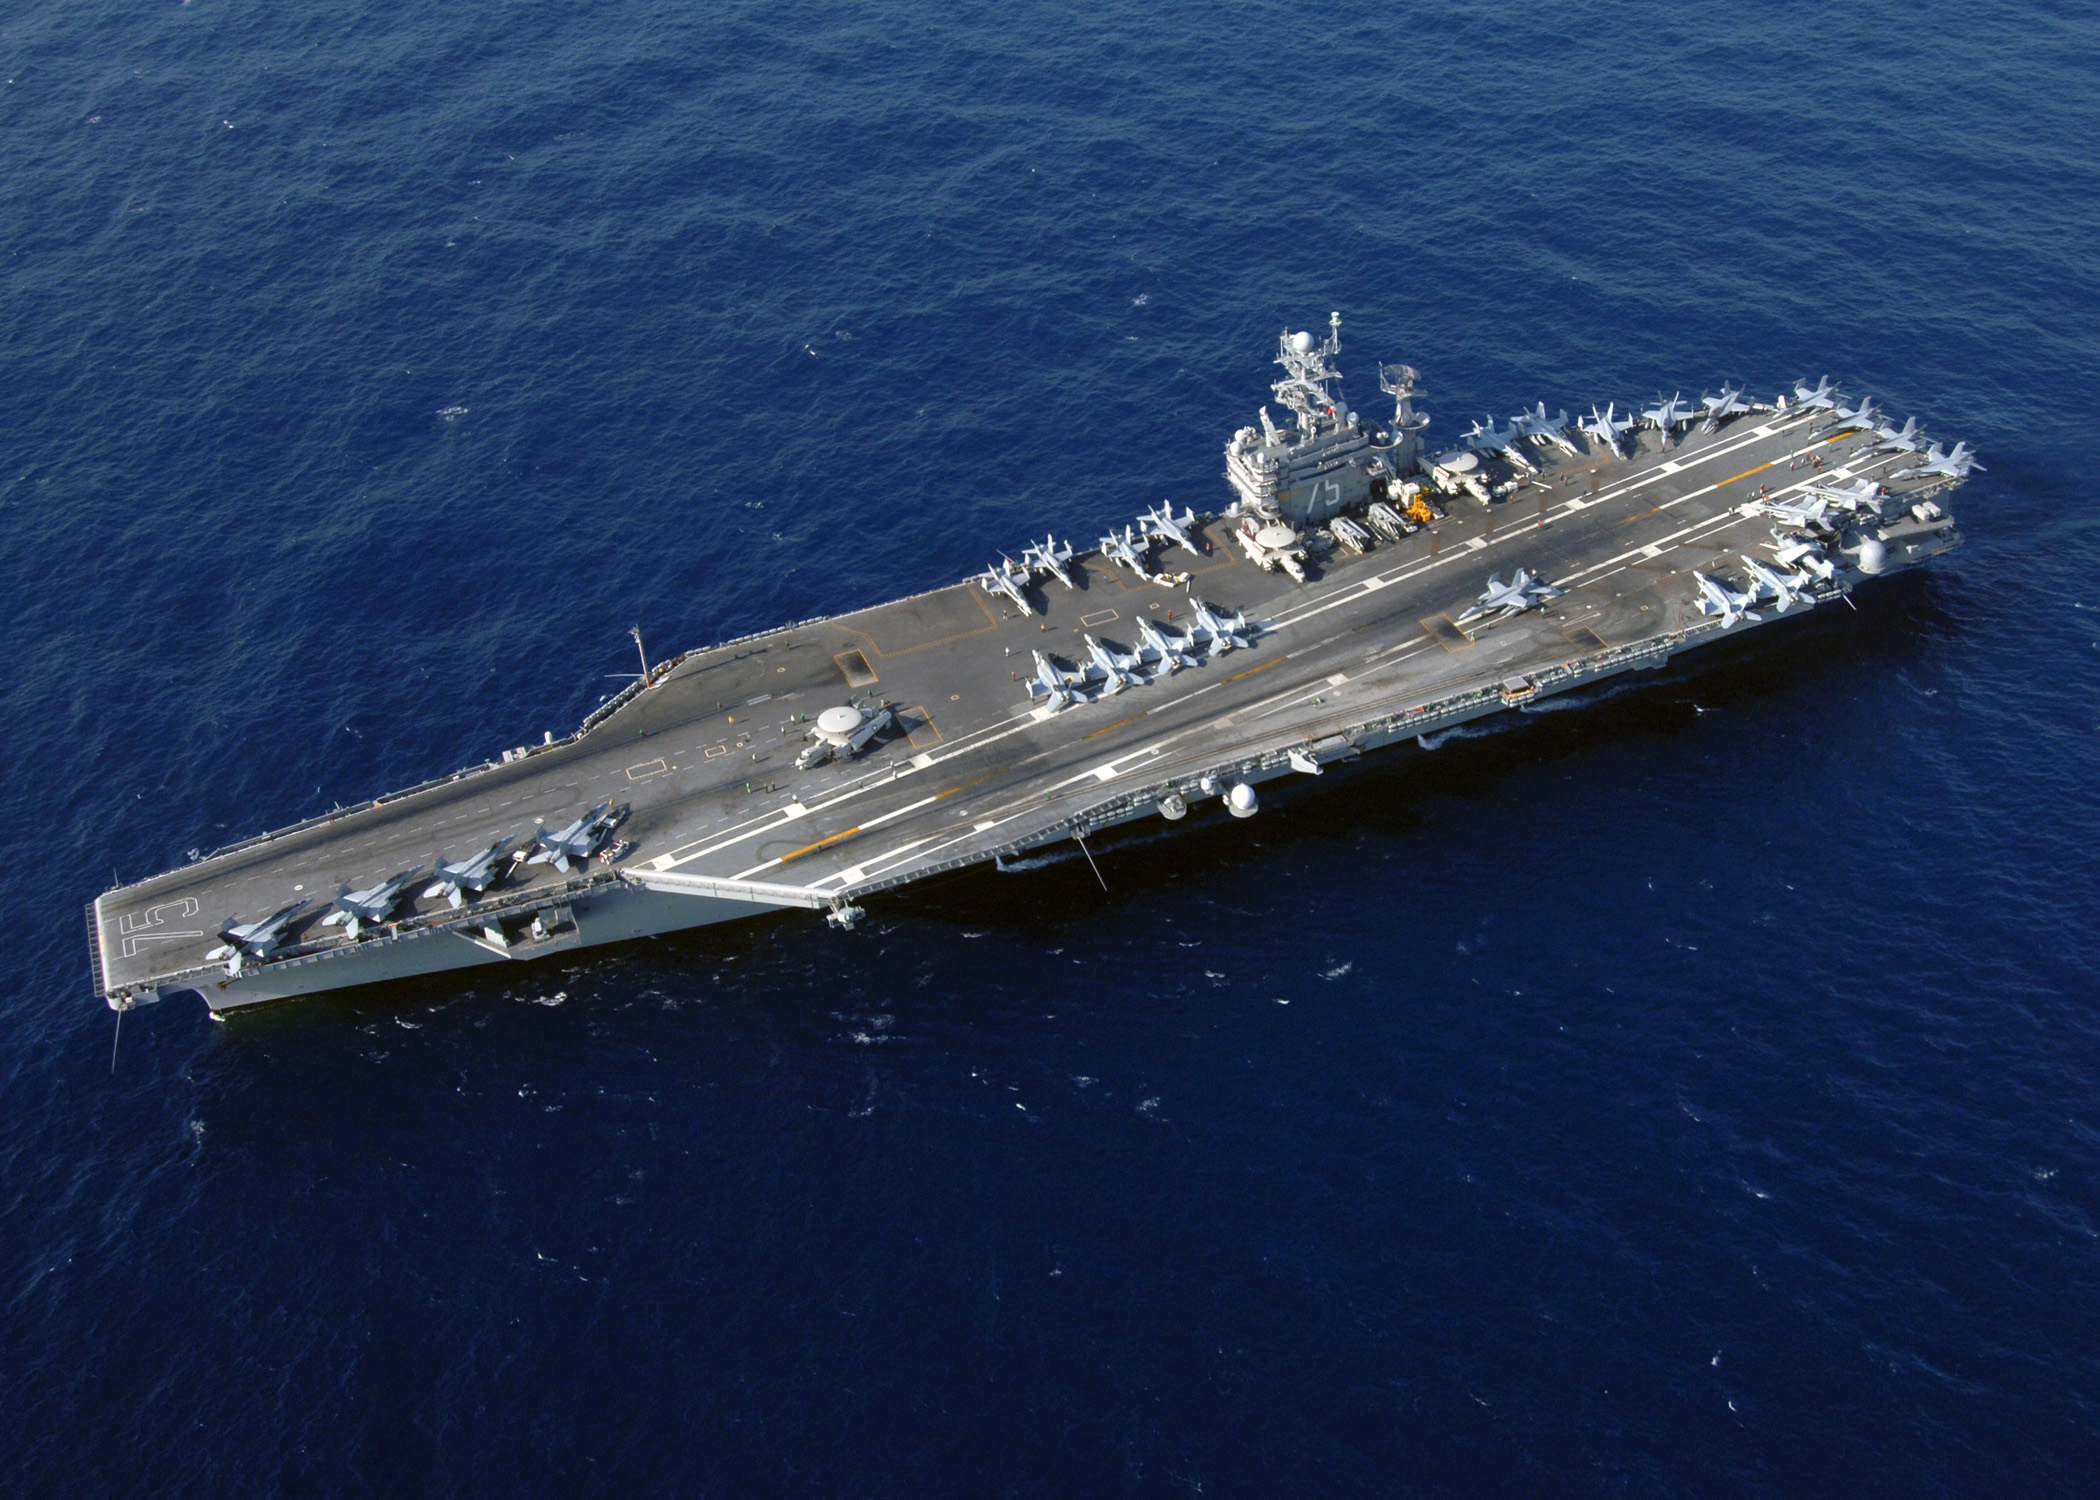 The USS Harry S. Truman CVN 75